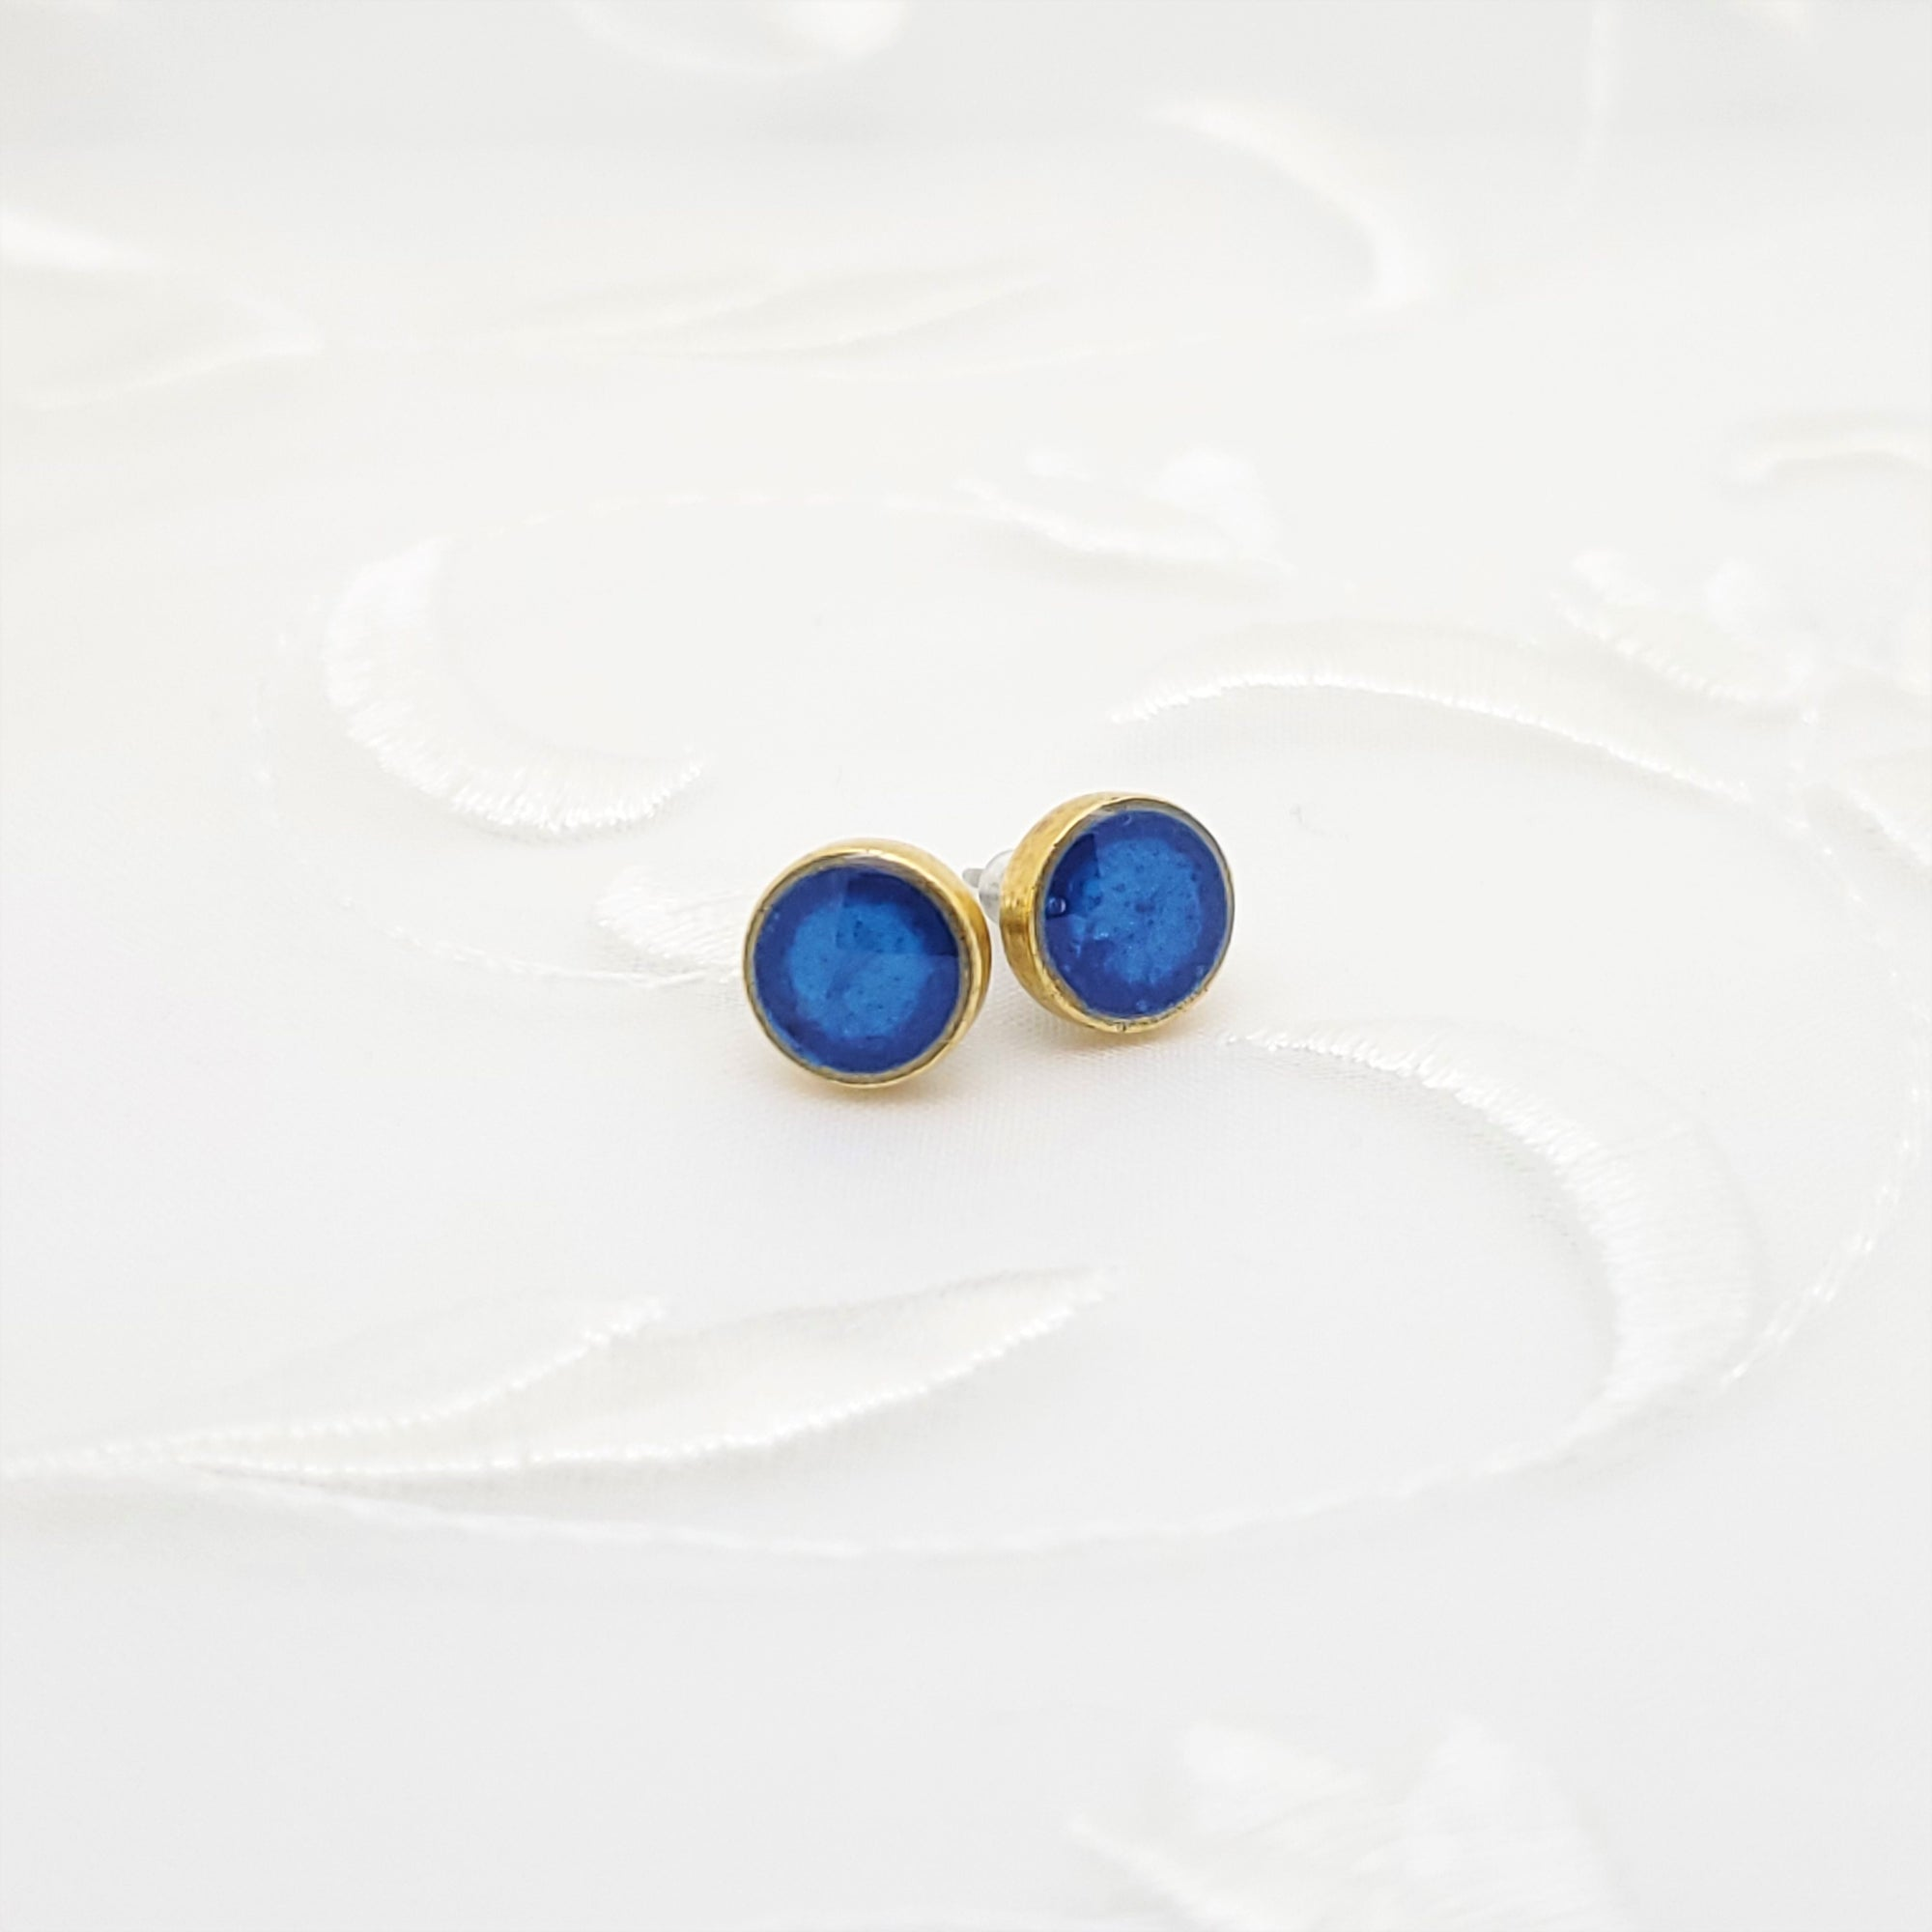 Antique Gold Round Stud Earrings with Pearlized Dark Blue Resin